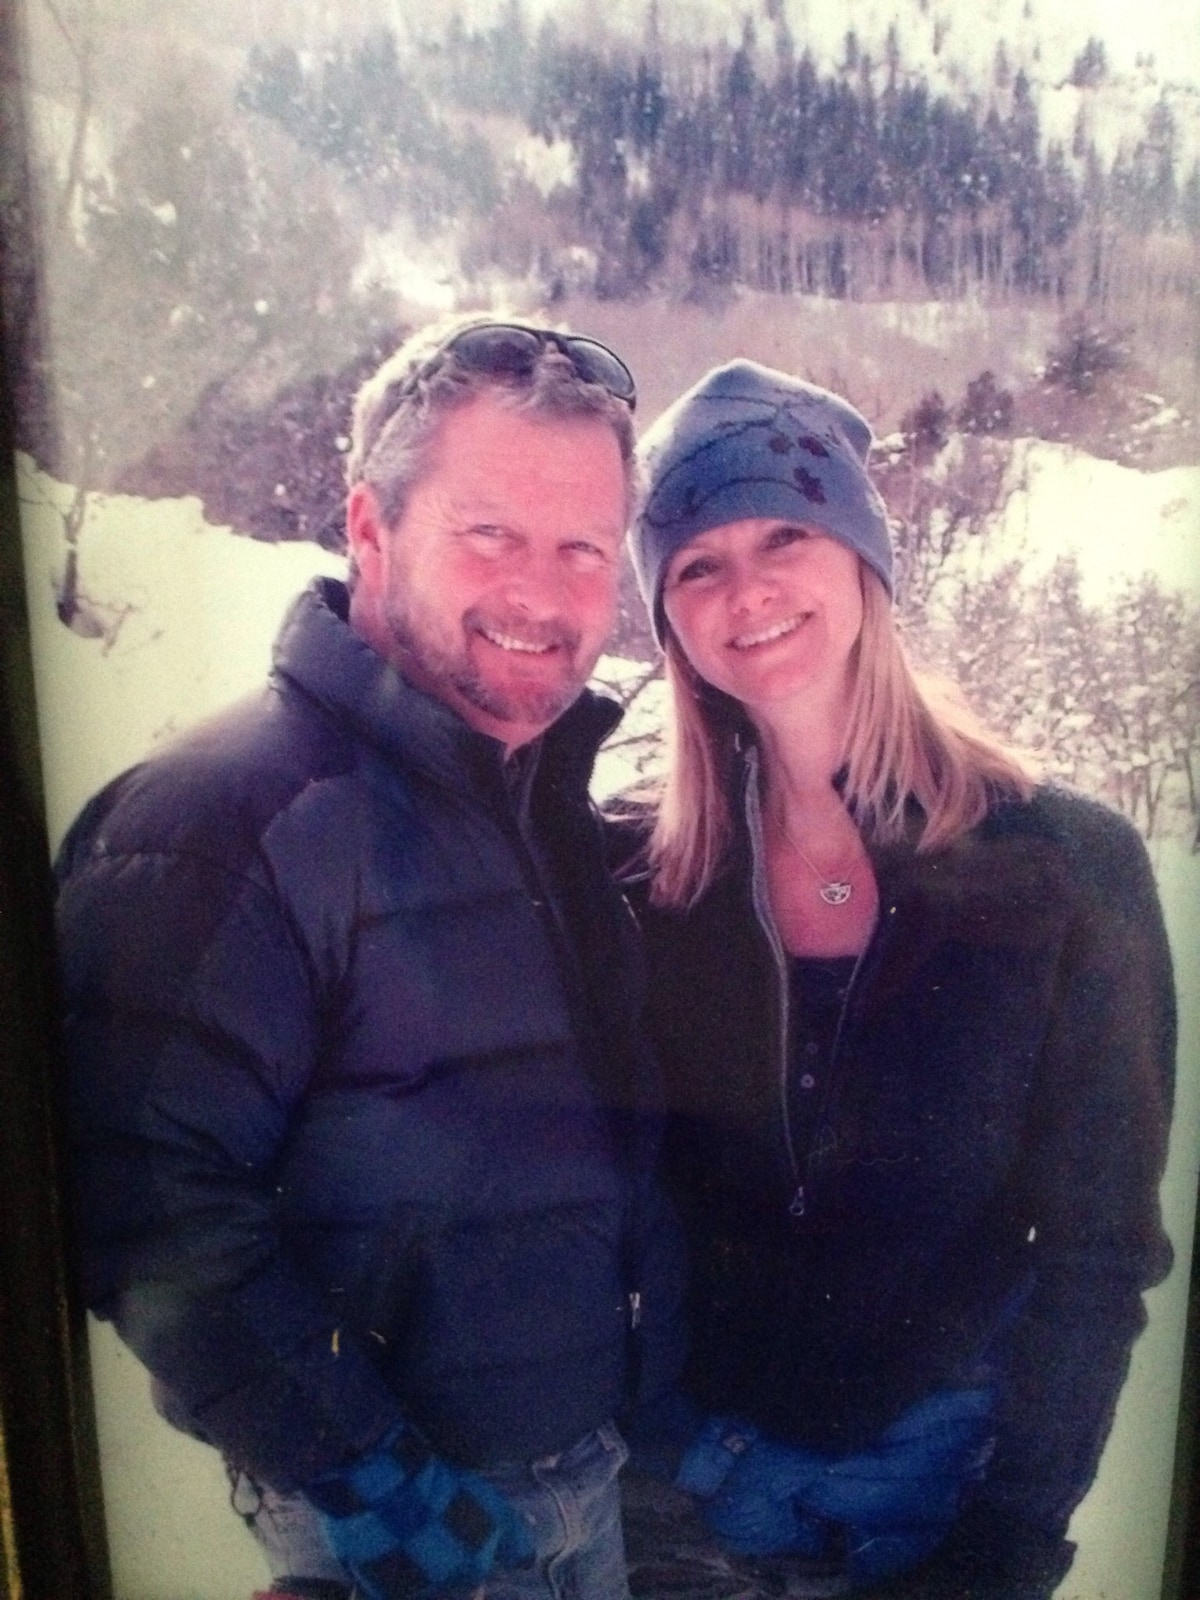 Duncan And Michelle From Colorado, United States